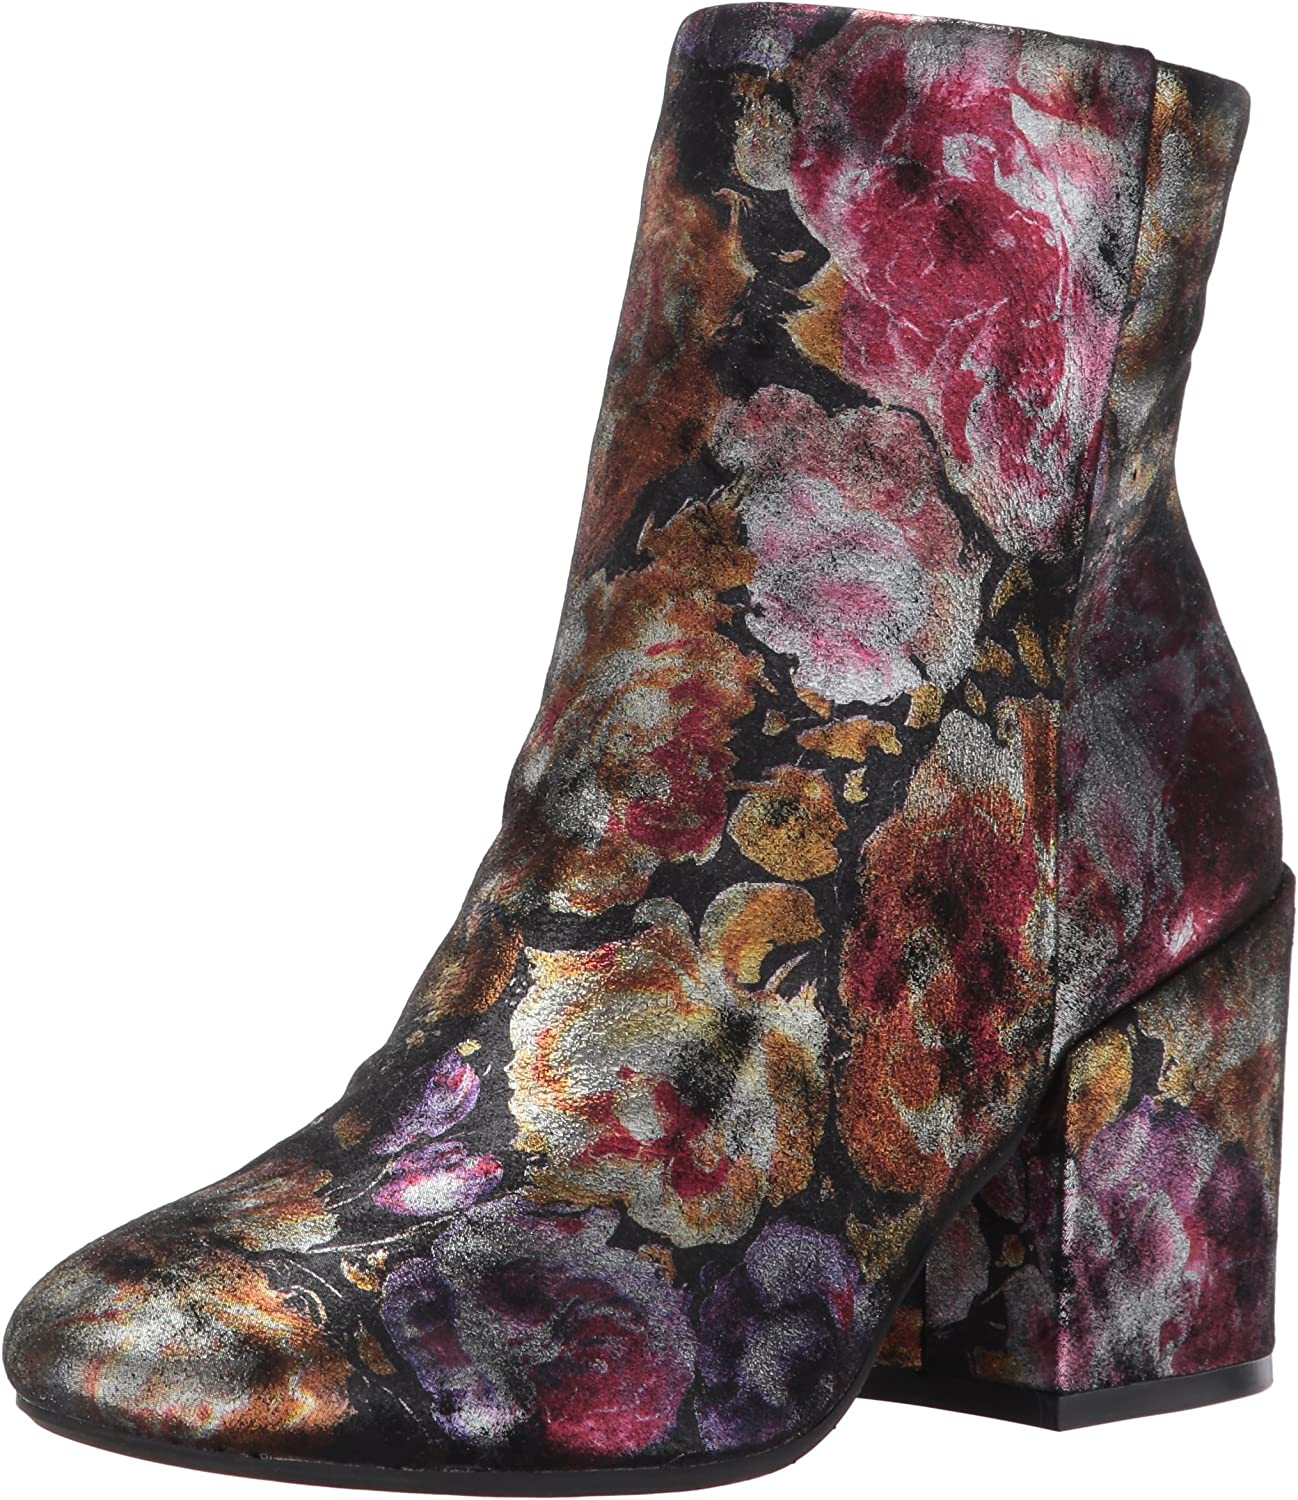 Kenneth Cole New York Womens Reeve Block Heel Bootie Metallic Floral Ankle Bootie